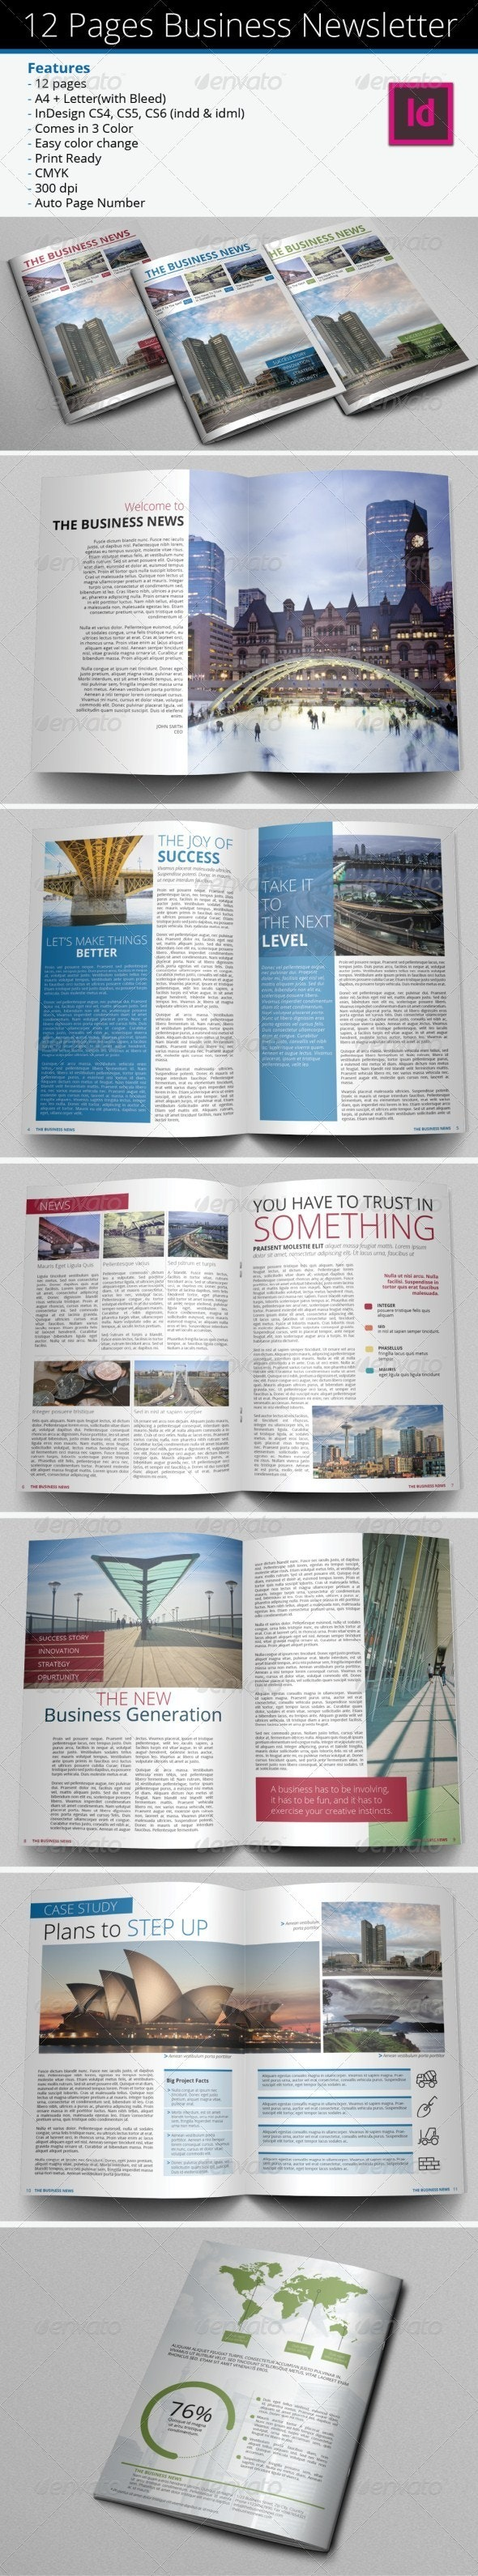 12 Pages Business Newsletter